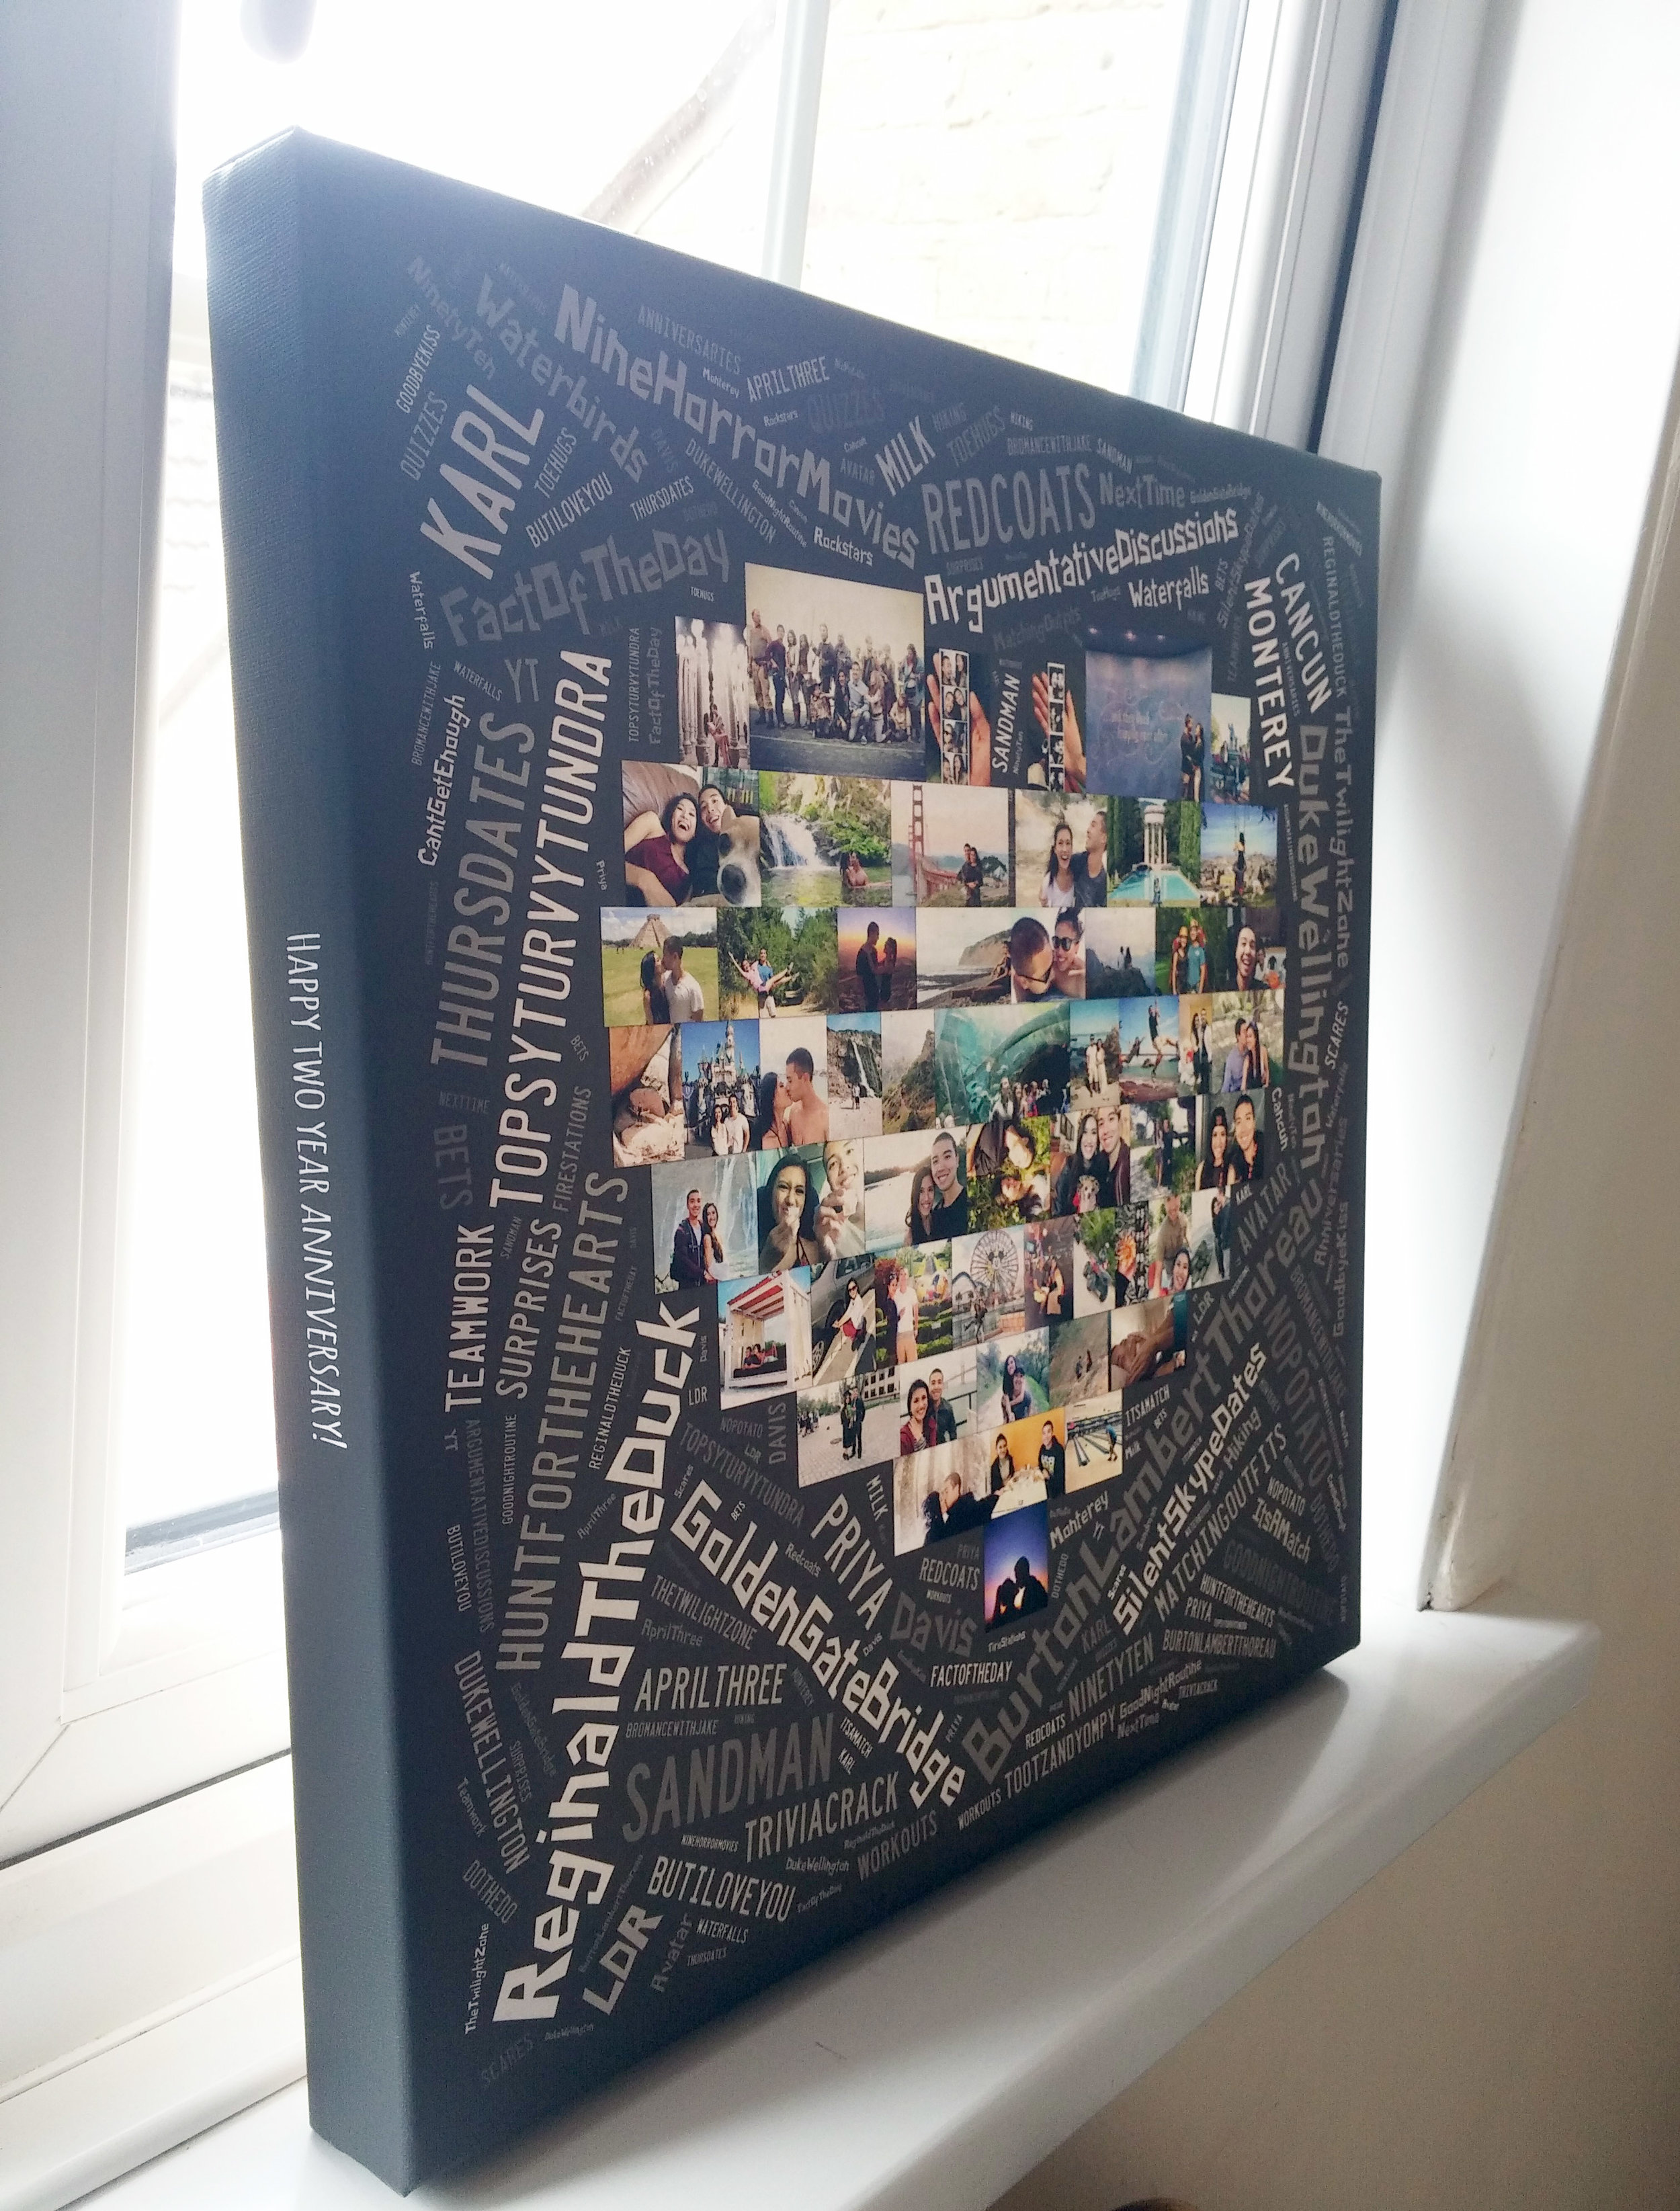 A WOrd ARt Collage comining photos and words on canvas for a birthday gift